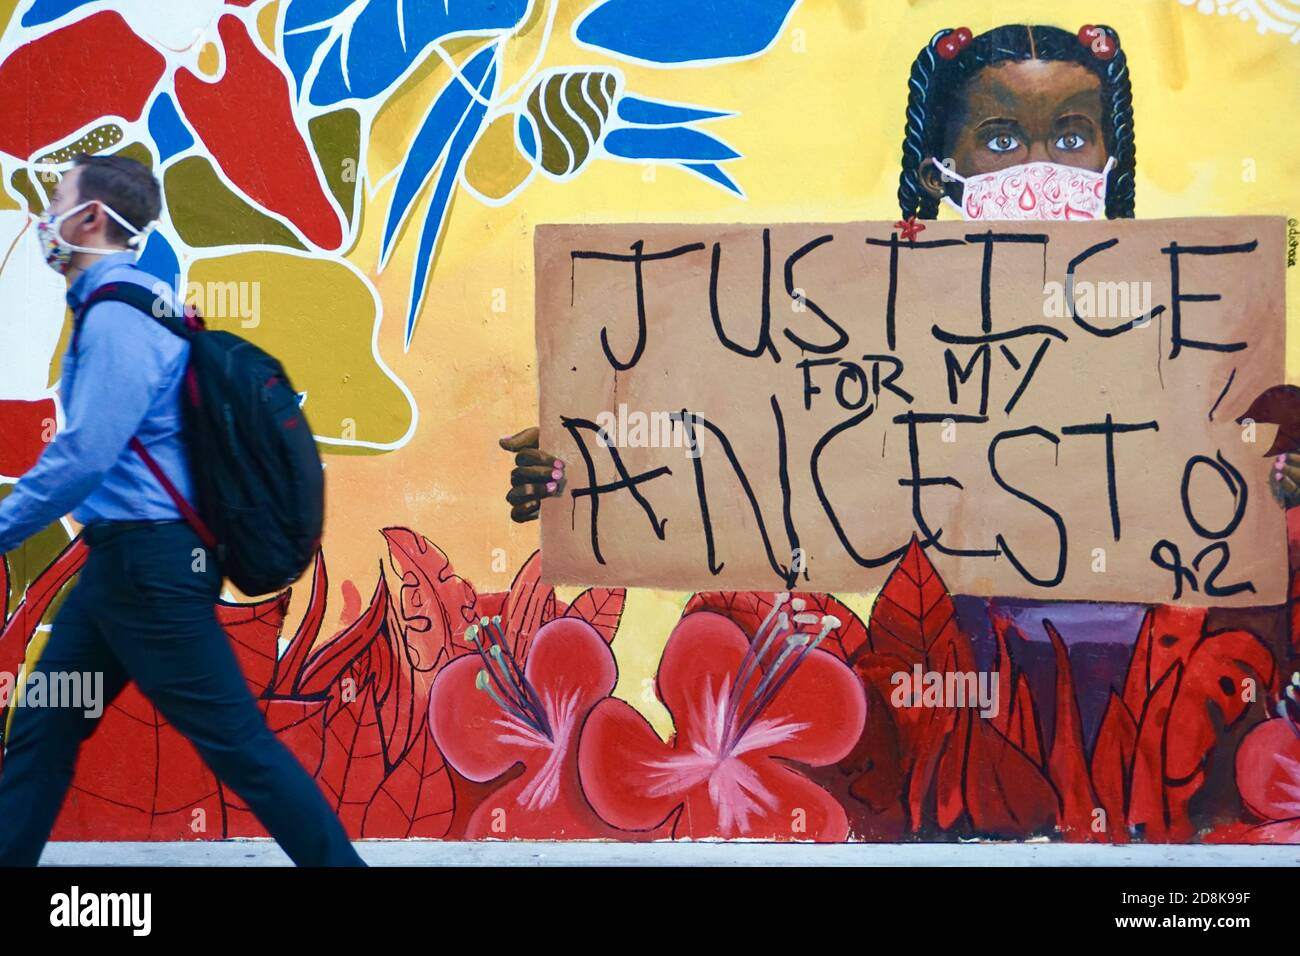 black-lives-matter-mural-in-downtown-oakland-of-an-african-american-girl-holding-a-sign-that-says-justice-for-my-ancestor-as-pedestrian-walks-by-2D8K99F.jpg